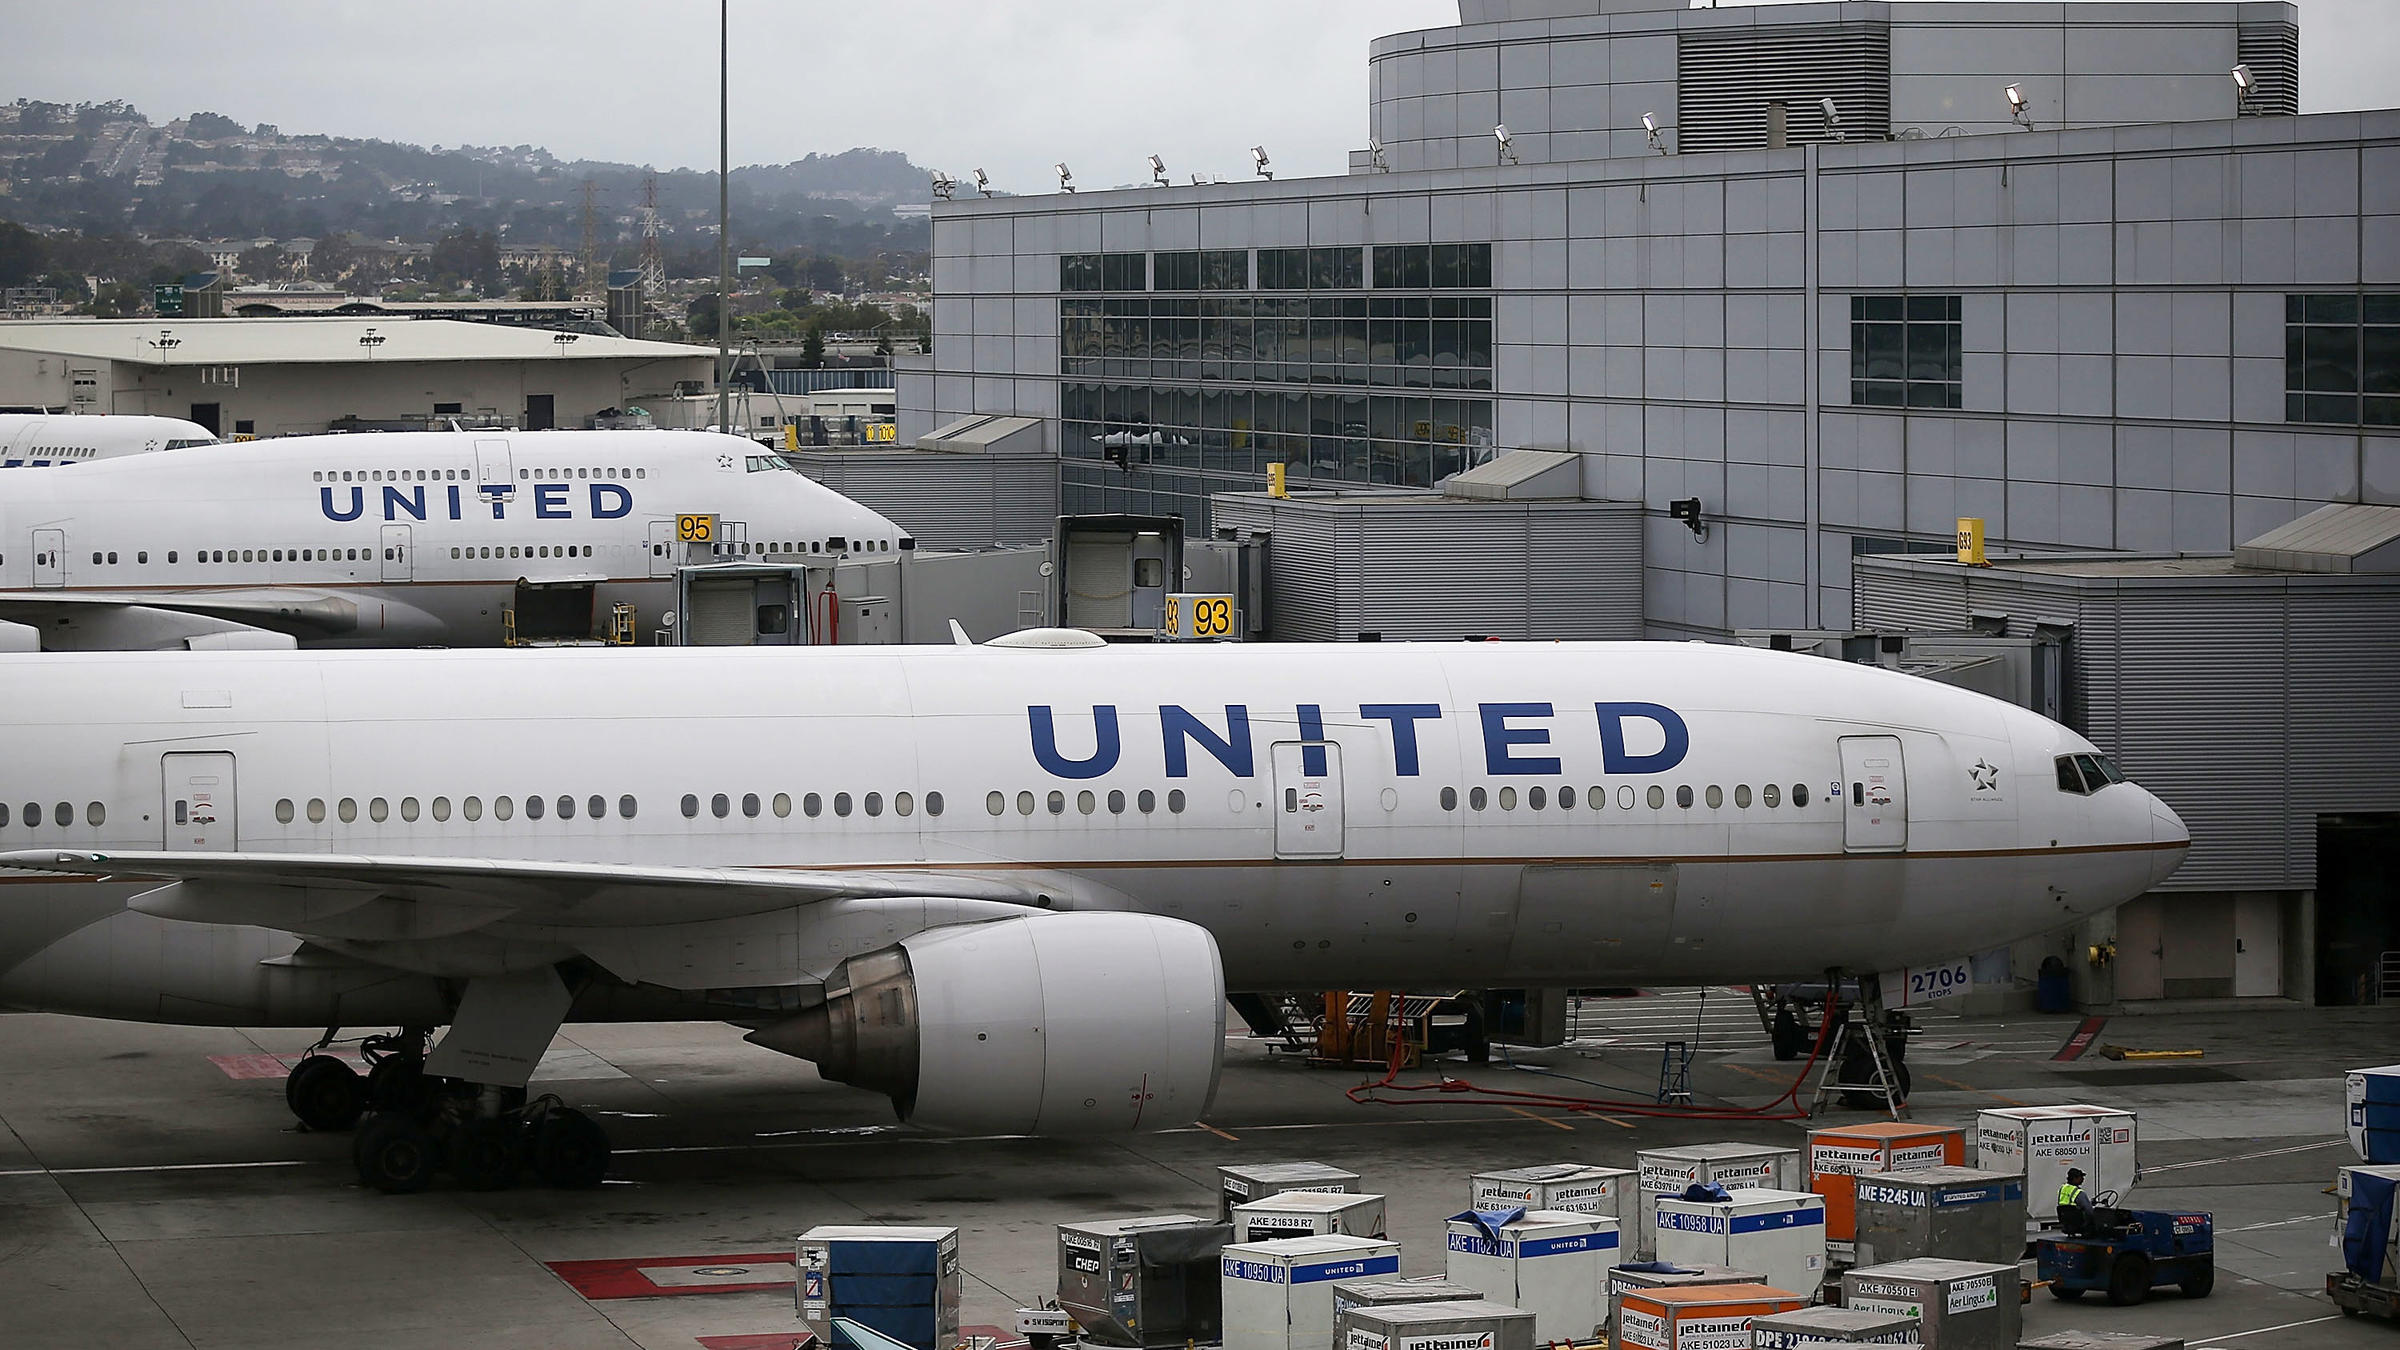 United Airlines Planes Sit On The Tarmac In San Francisco In 2015 The Airline Had Two Incidents Involving Dogs In Two Days